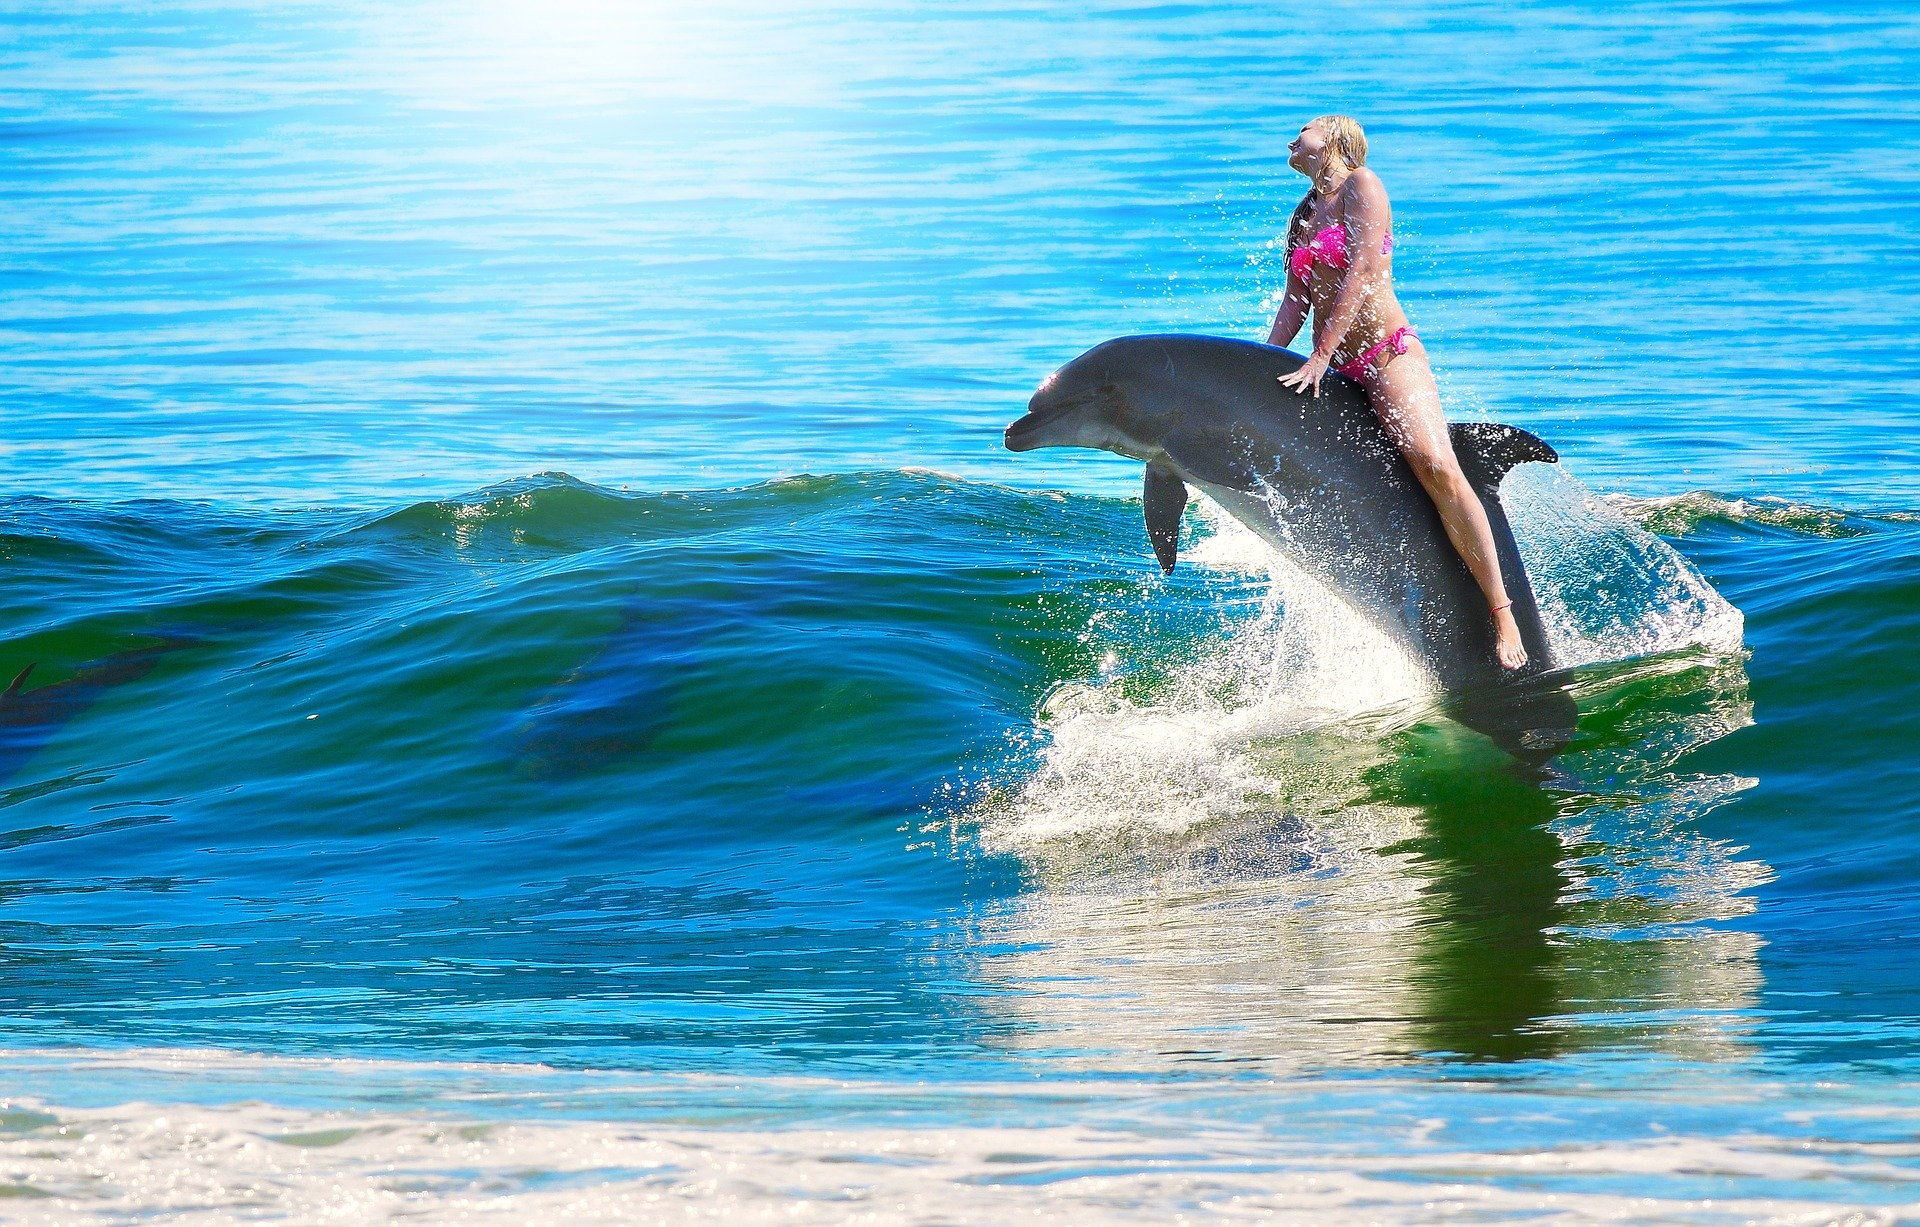 Swim With Dolphins In Queensland For An Exciting Adventure